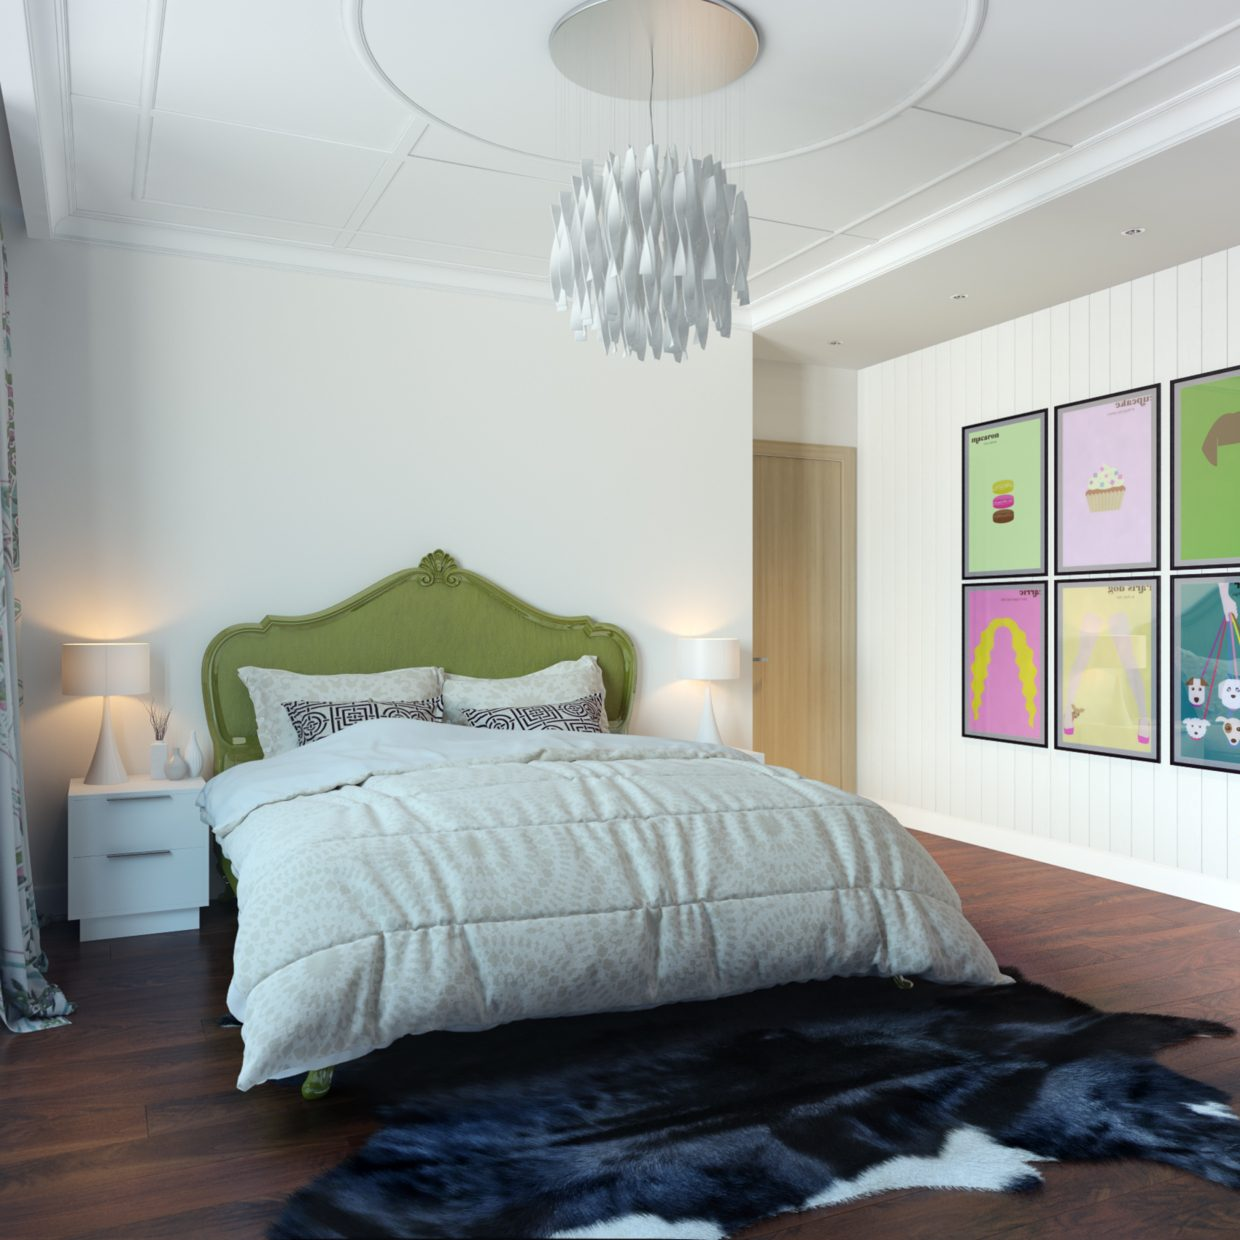 Pop art bedroom wall interior design ideas Bedroom wall art